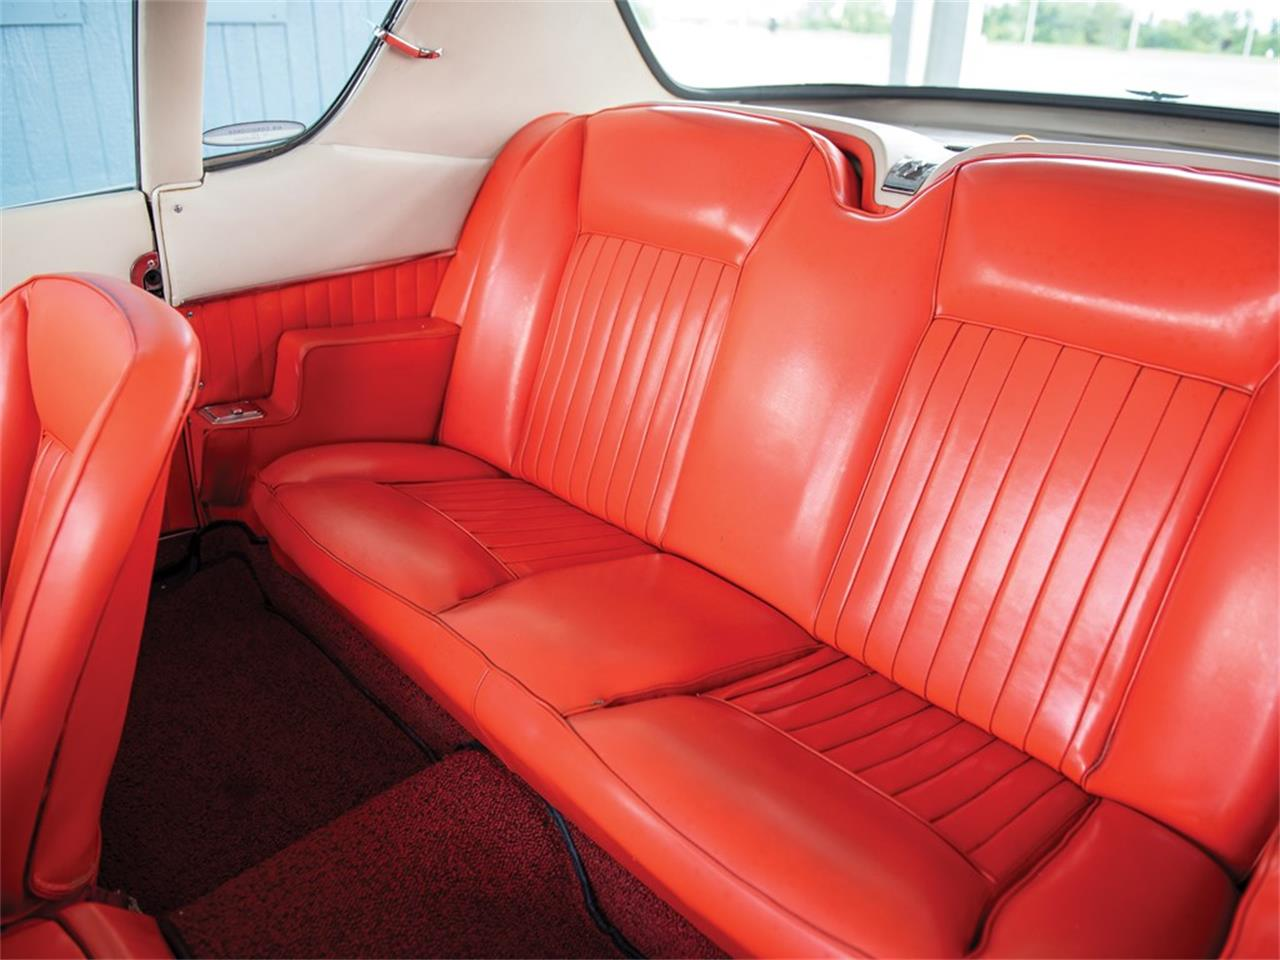 1963 Studebaker Avanti for sale in Auburn, IN – photo 9